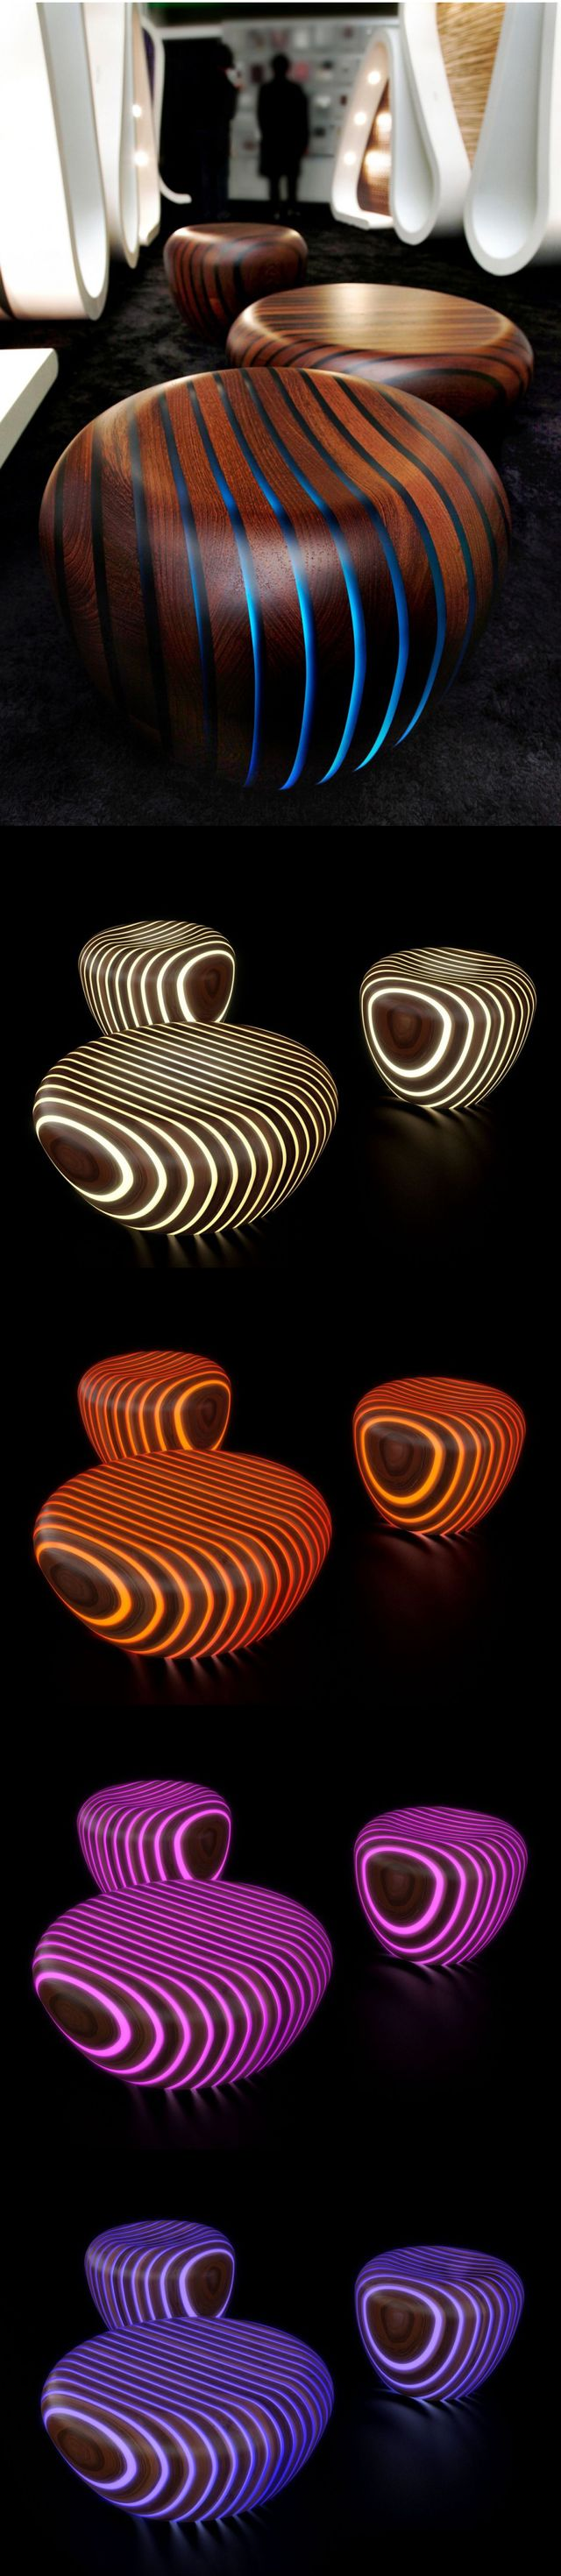 #wantoftheday Stools with lights in them 💡⚡️🚨🔥